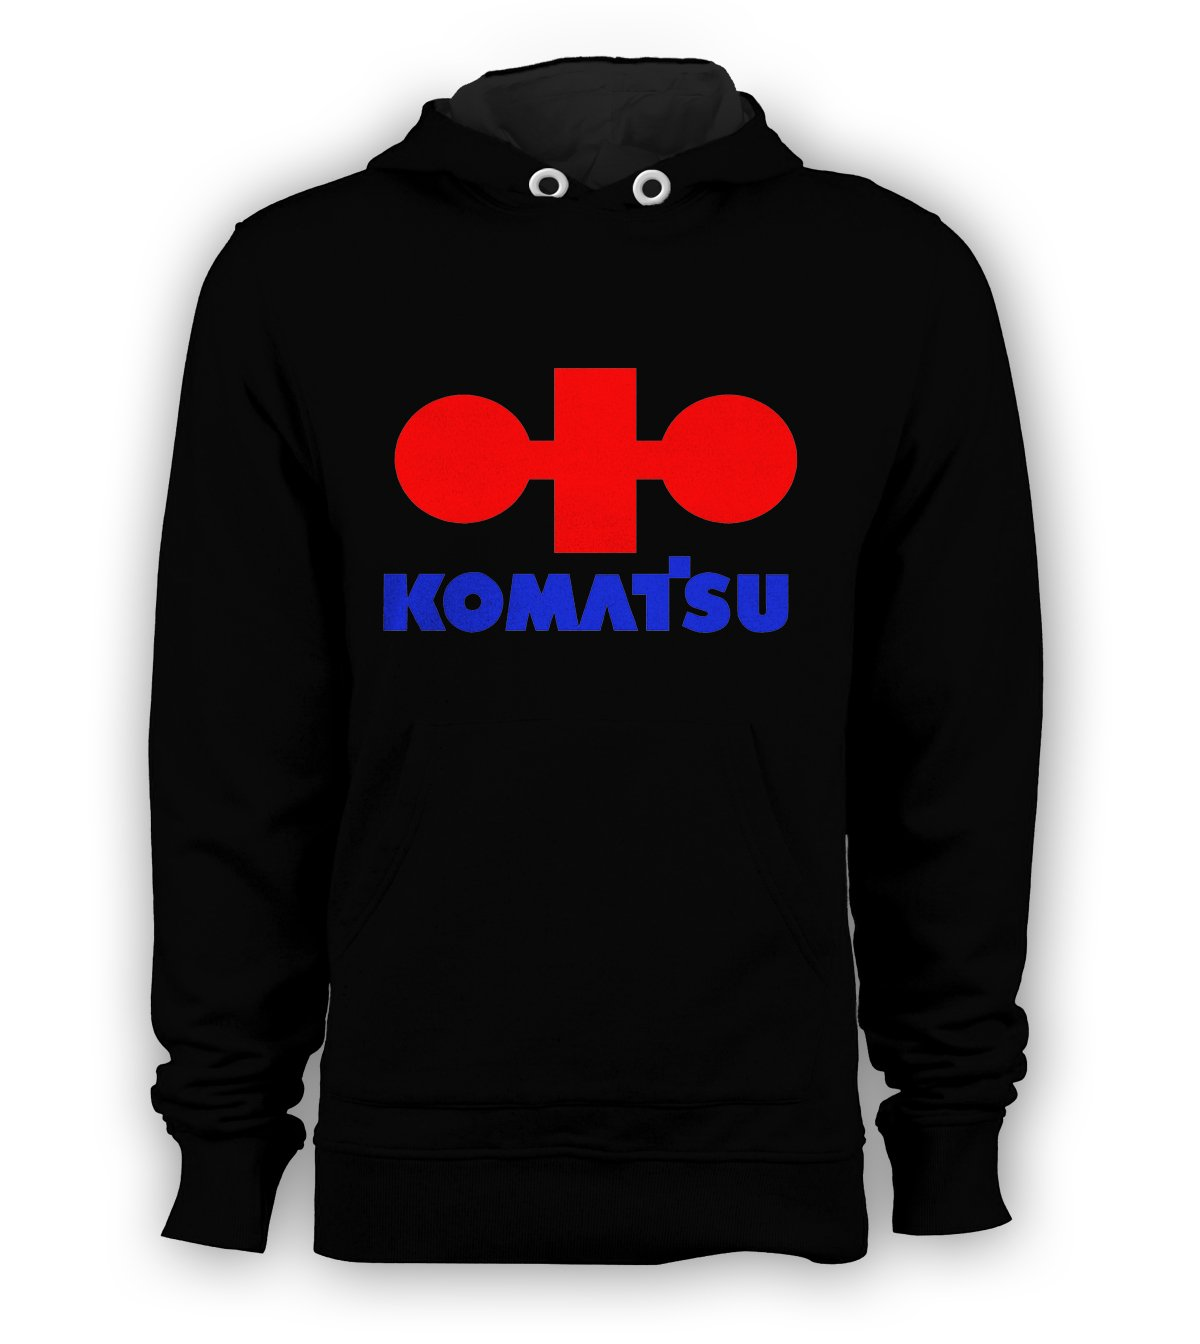 Komatsu Logo Pullover Hoodie Men Sweatshirts Size S to 3XL New Black